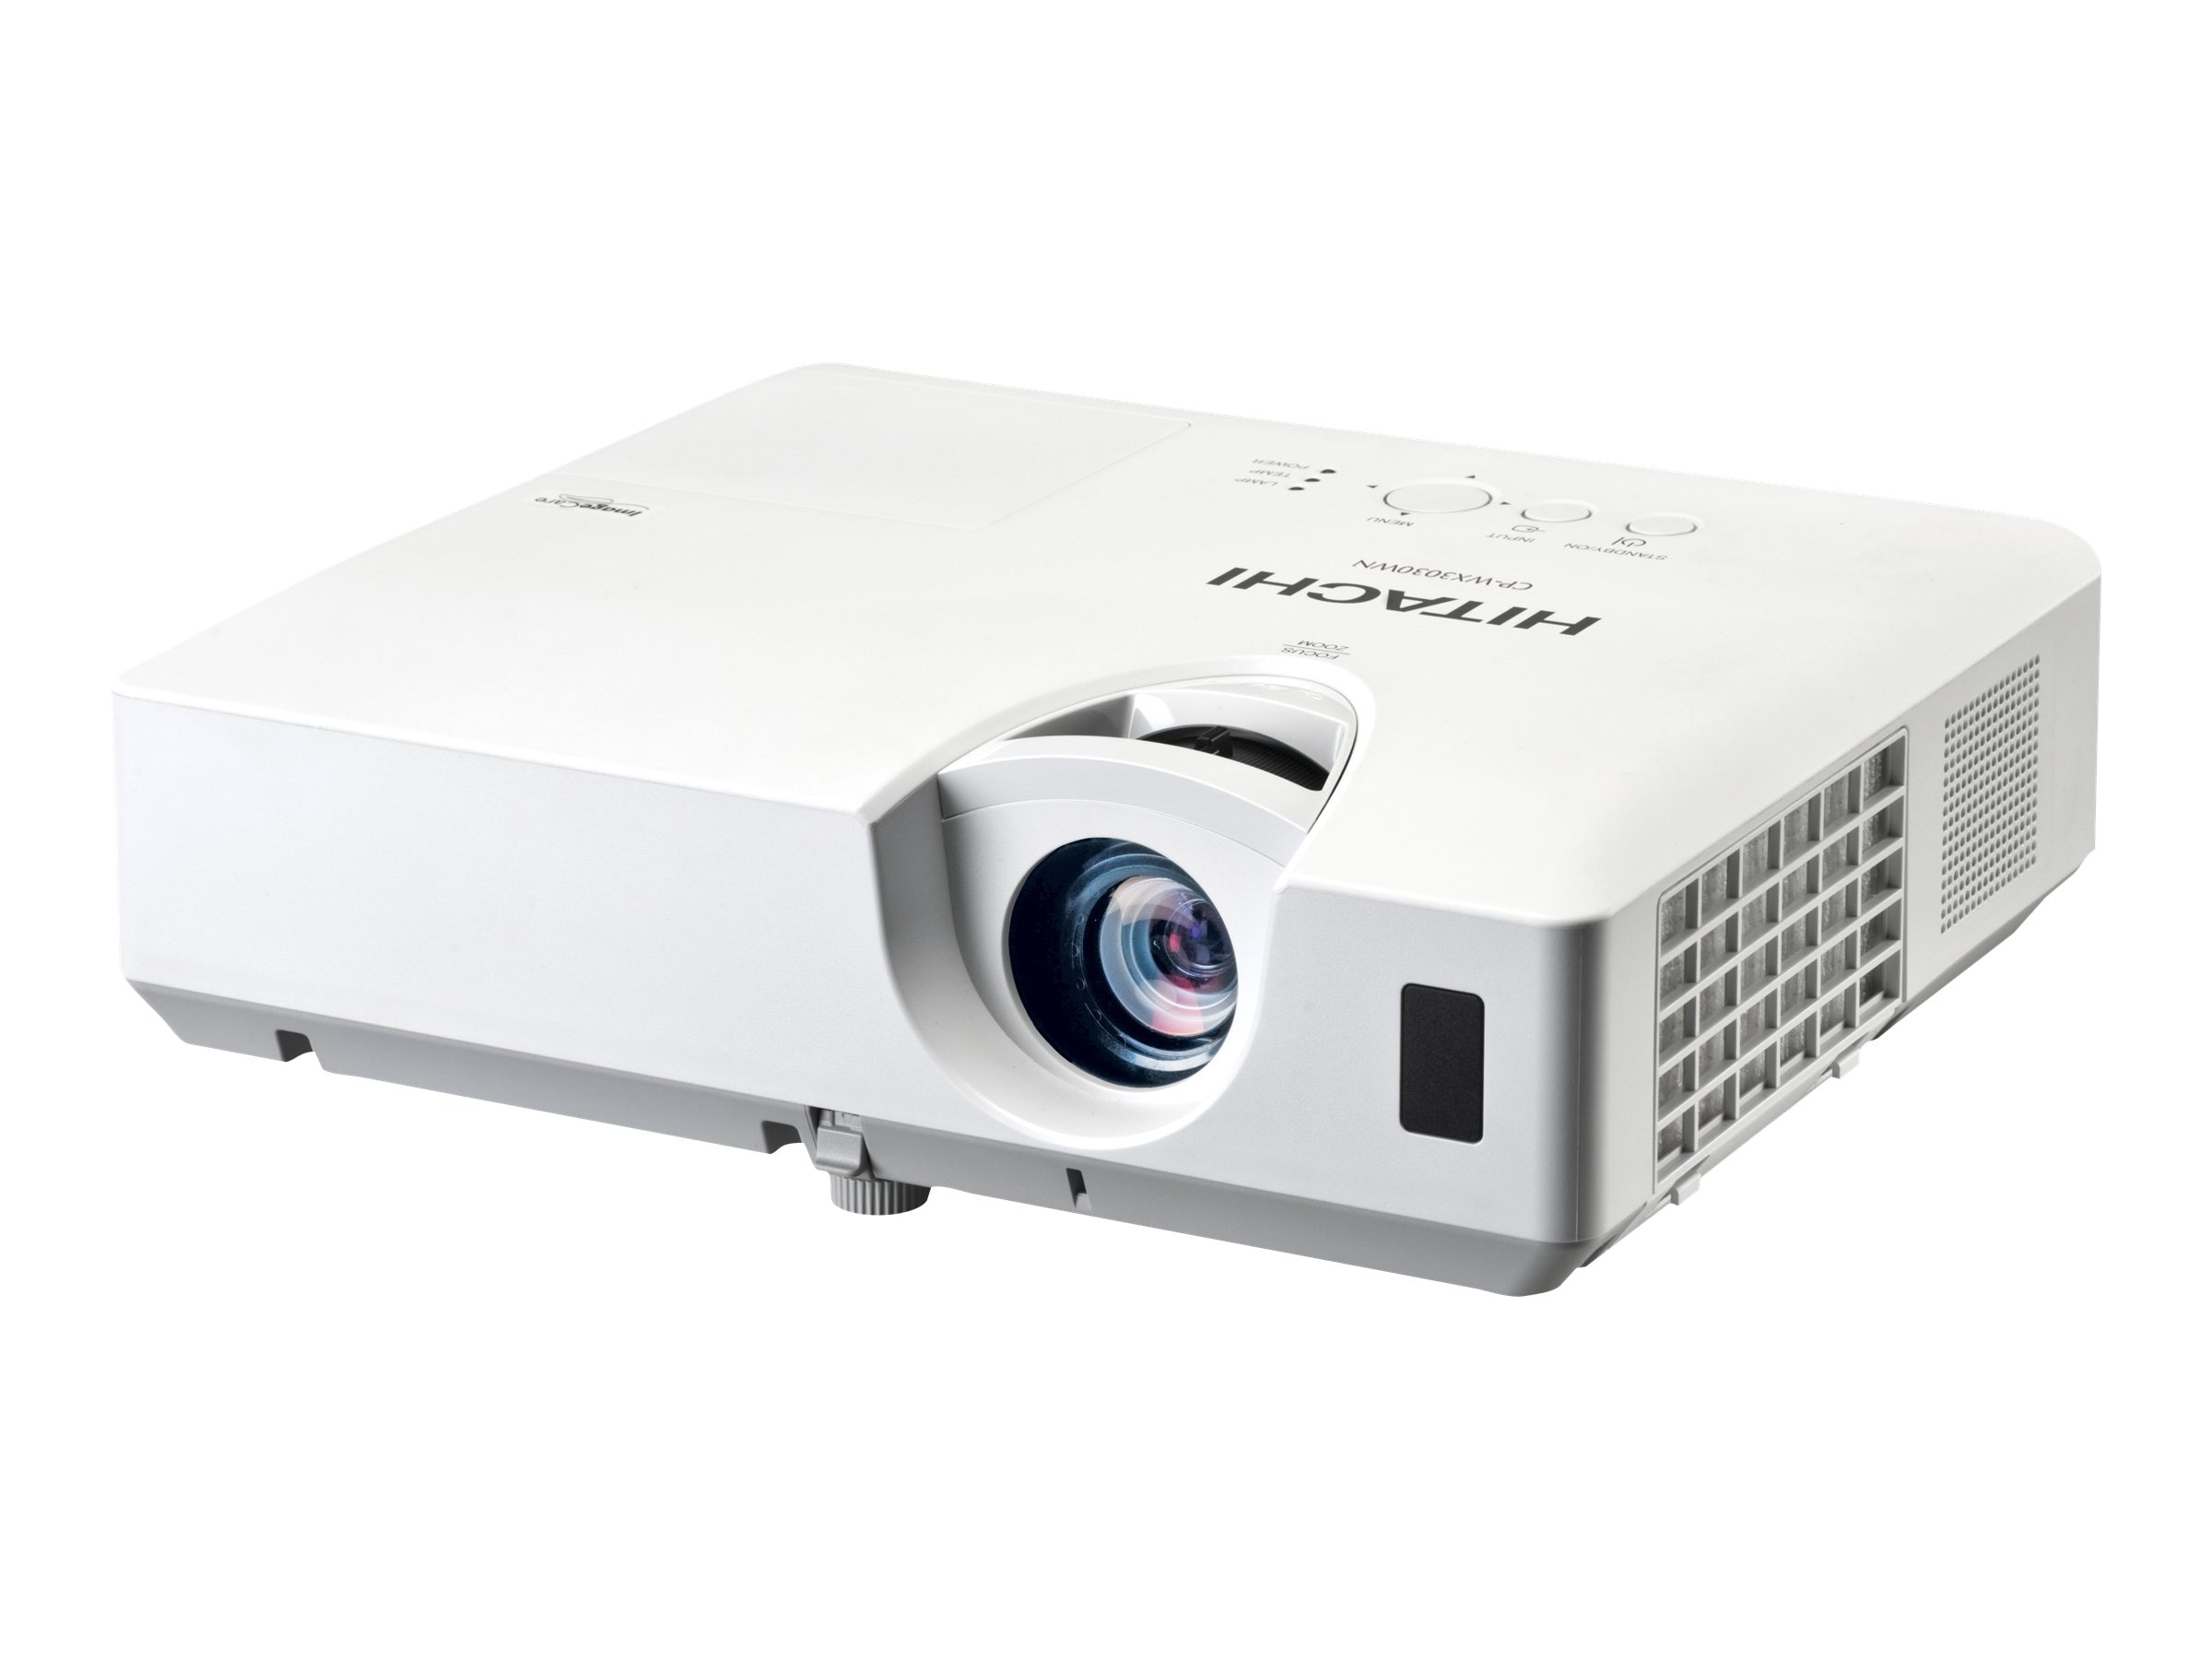 Hitachi CPWX3030WN Image 1